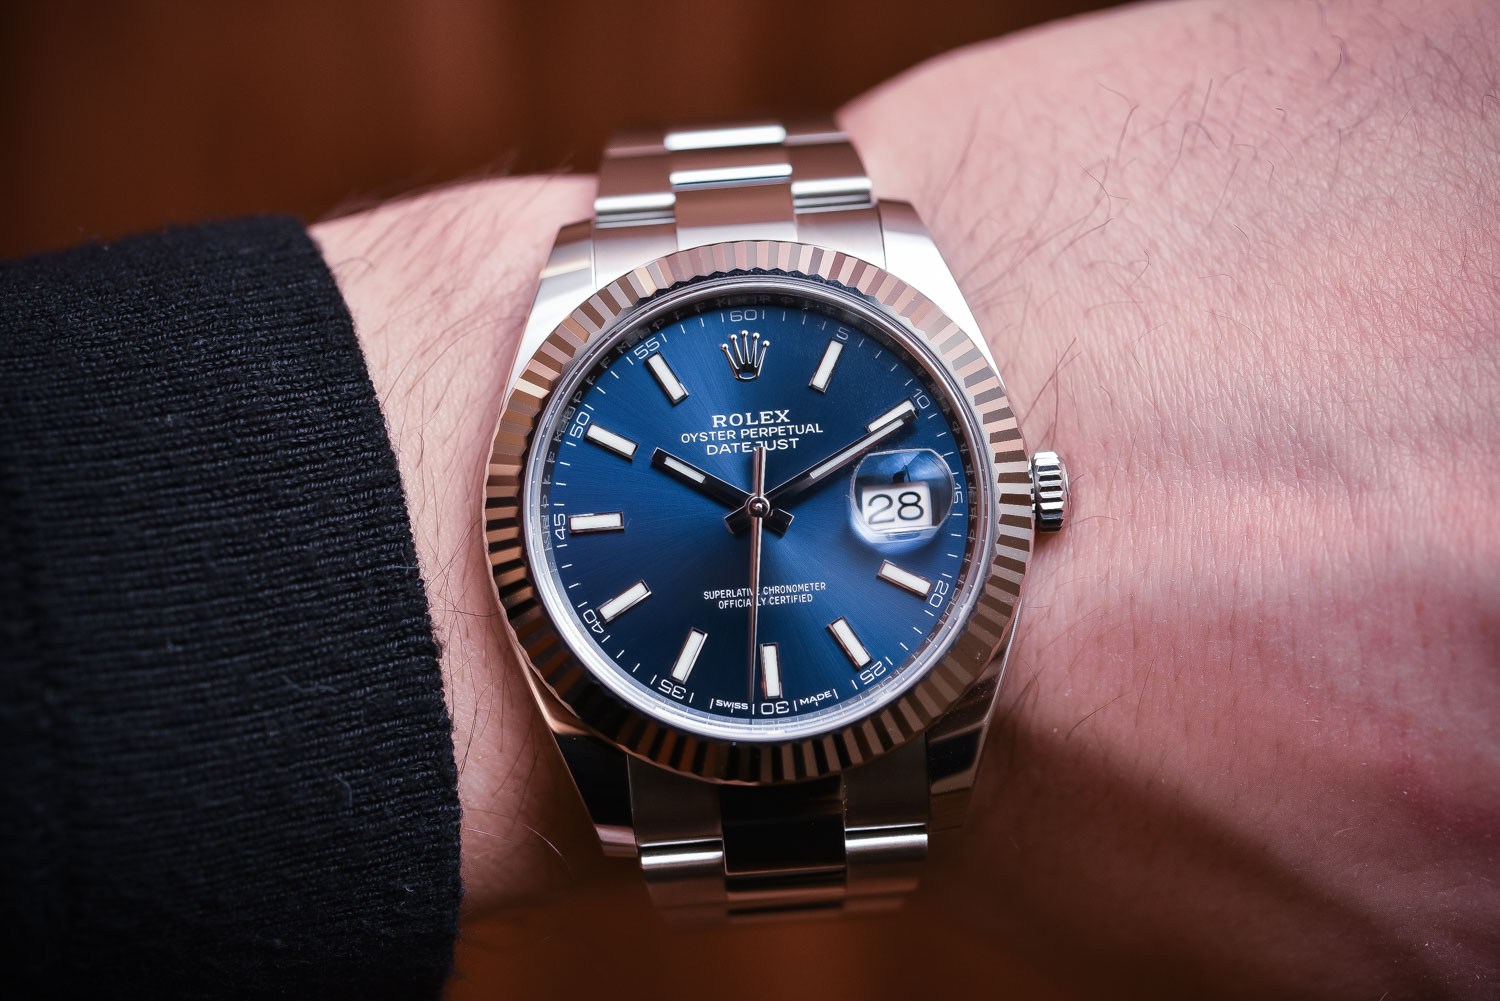 Rolex Datejust 41 steel - Top 10 Baselworld 2017